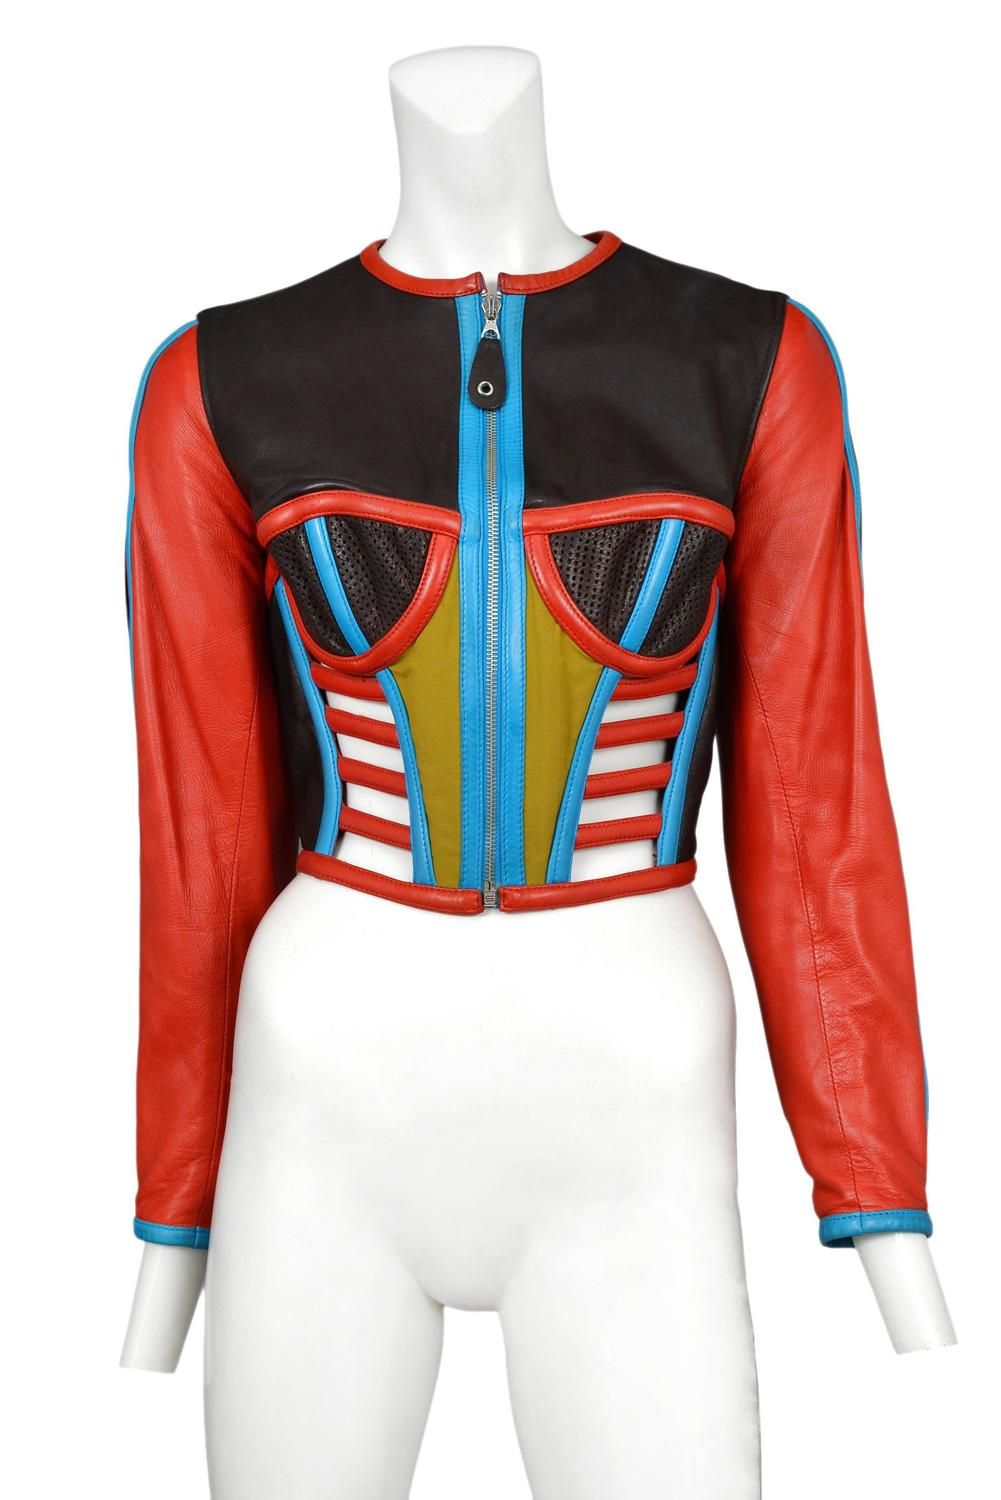 Gaultier Iconic Red and Blue Corset Leather Jacket 1991 ...